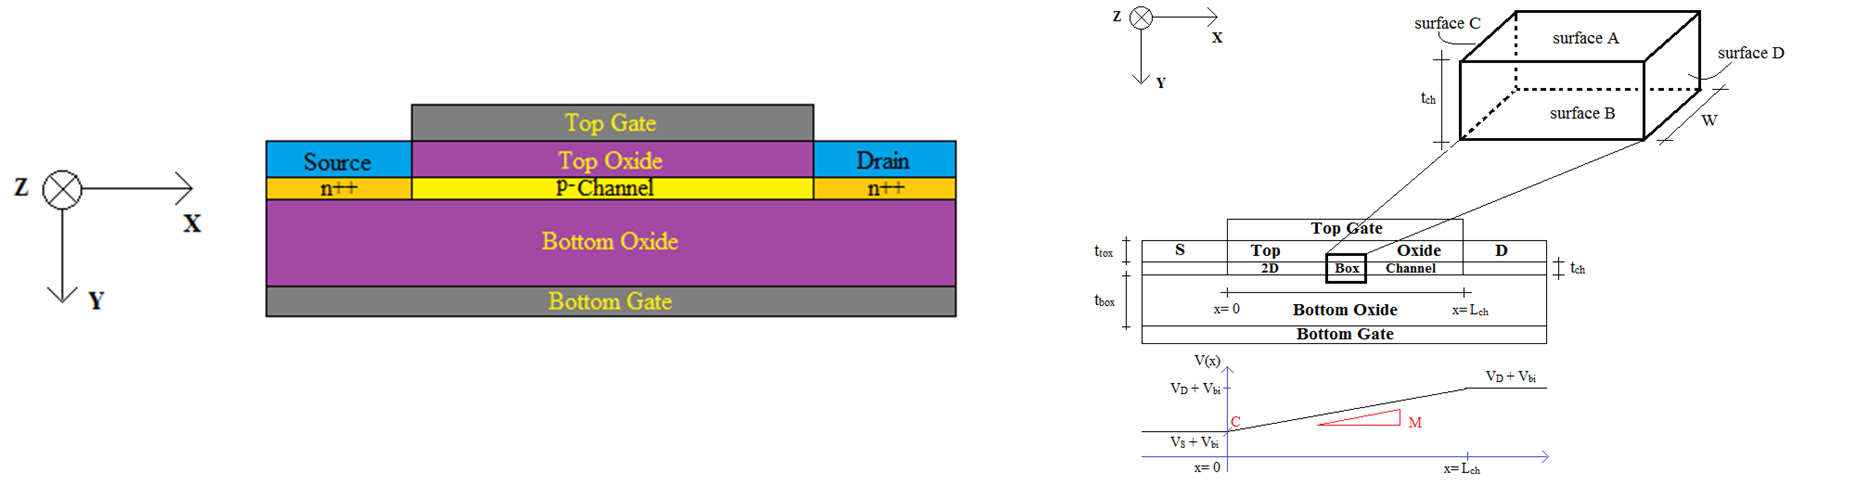 https://sites.google.com/site/imtiazahmedpollab/research/Monolayer%20WSe2%20MOSFET.png?attredirects=0